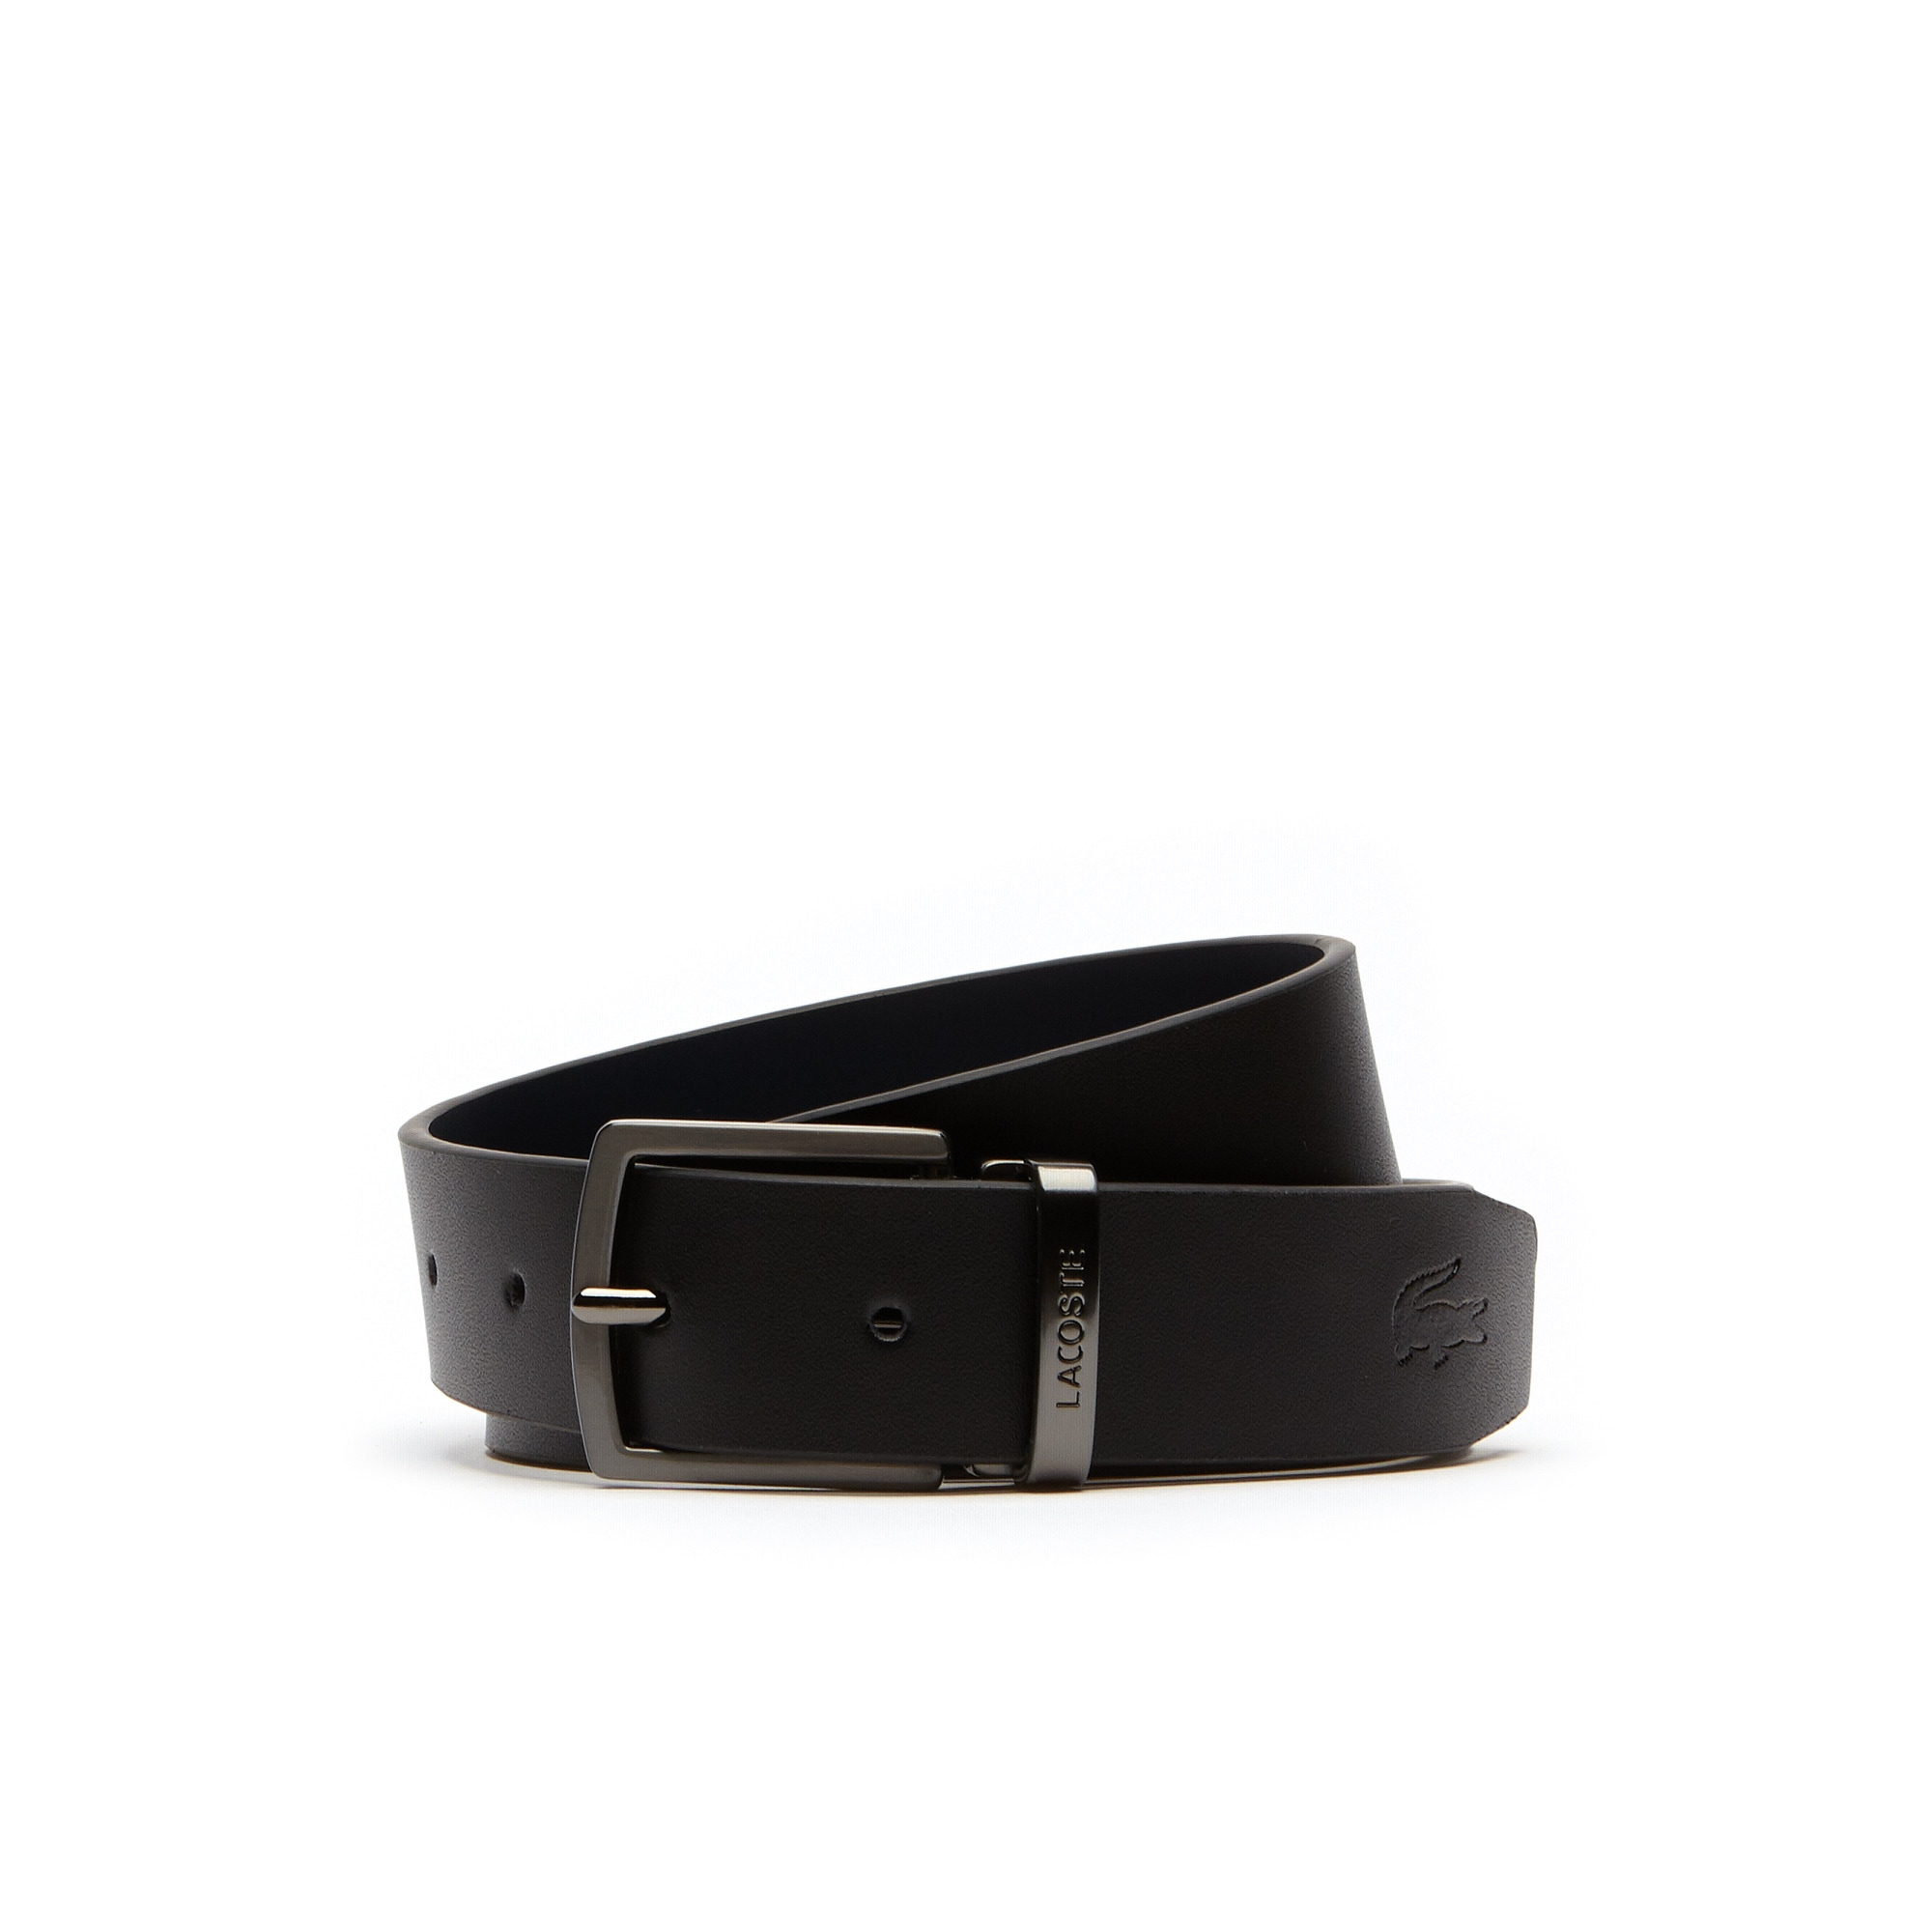 라코스테 벨트 Lacoste Mens Reversible Leather Belt and Two Buckles Gift Set,black/navy